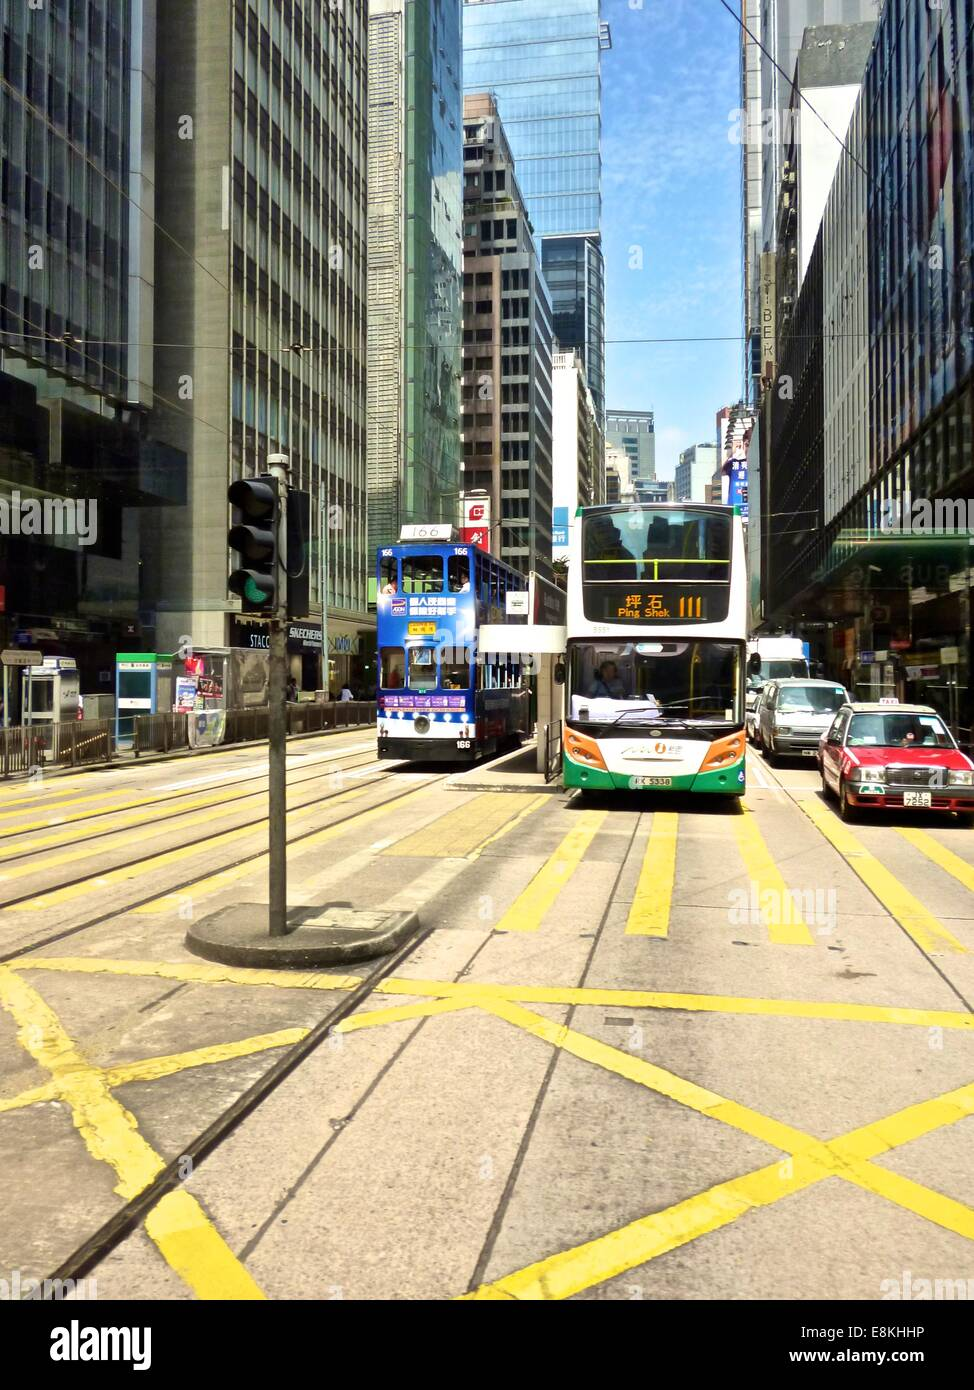 Busy street in Hong Kong - Stock Image